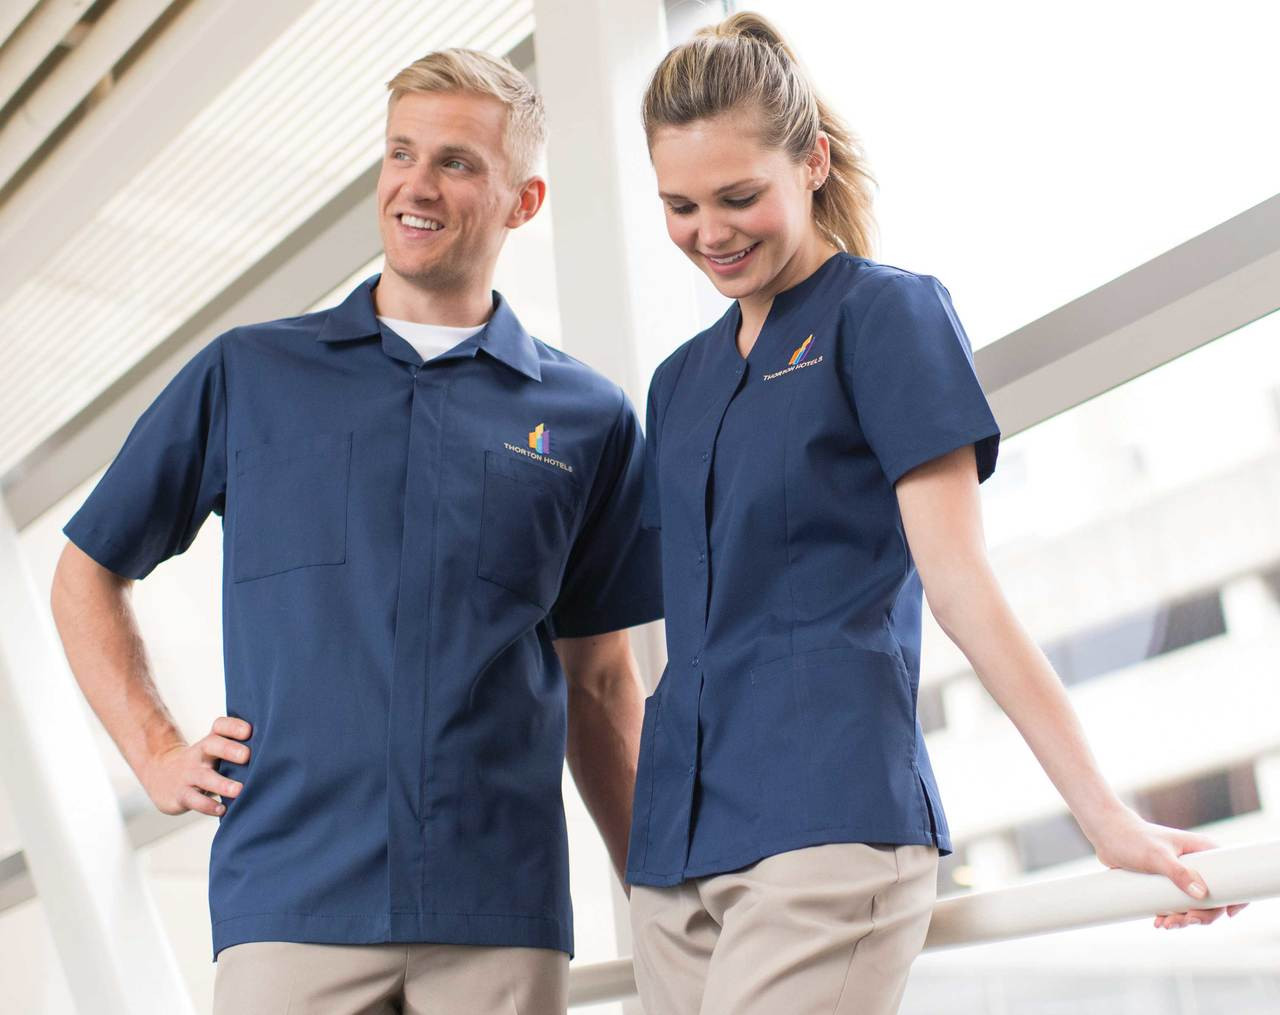 Full zipper shirt for active employees like housekeepers.